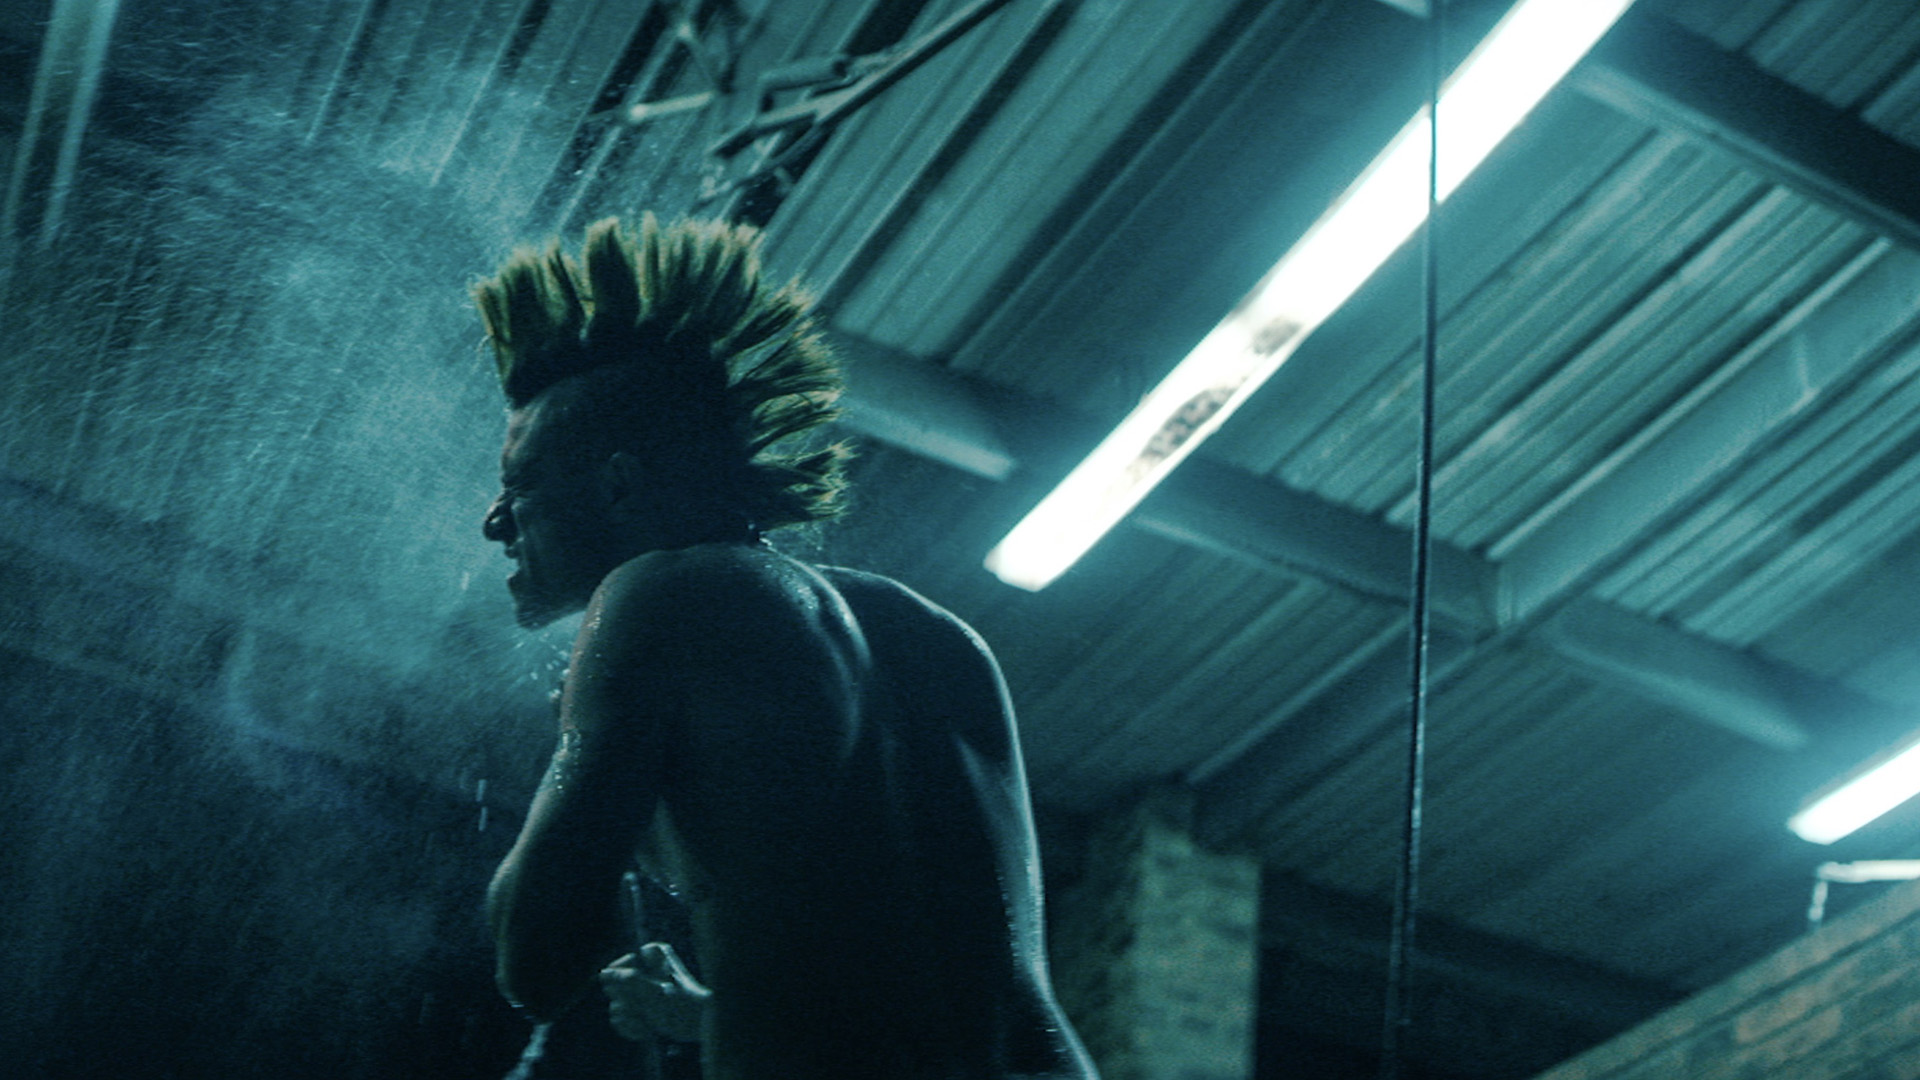 'It's not 1997 anymore': Brian Deneke death revisited in 'Bomb City,' screening Tuesday in Amarillo